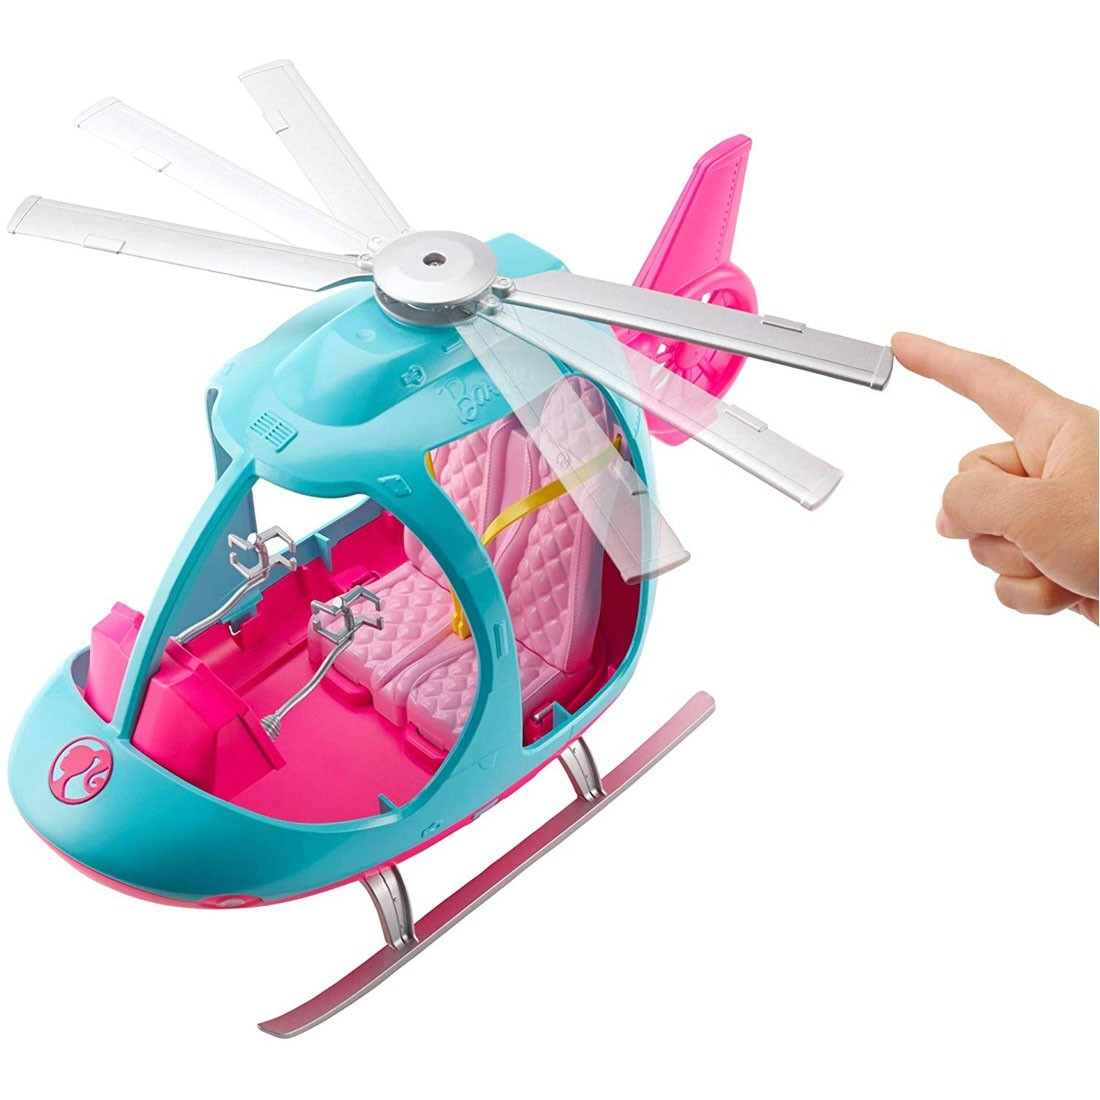 barbie-dreamhouse-adventures-helicopter (2)